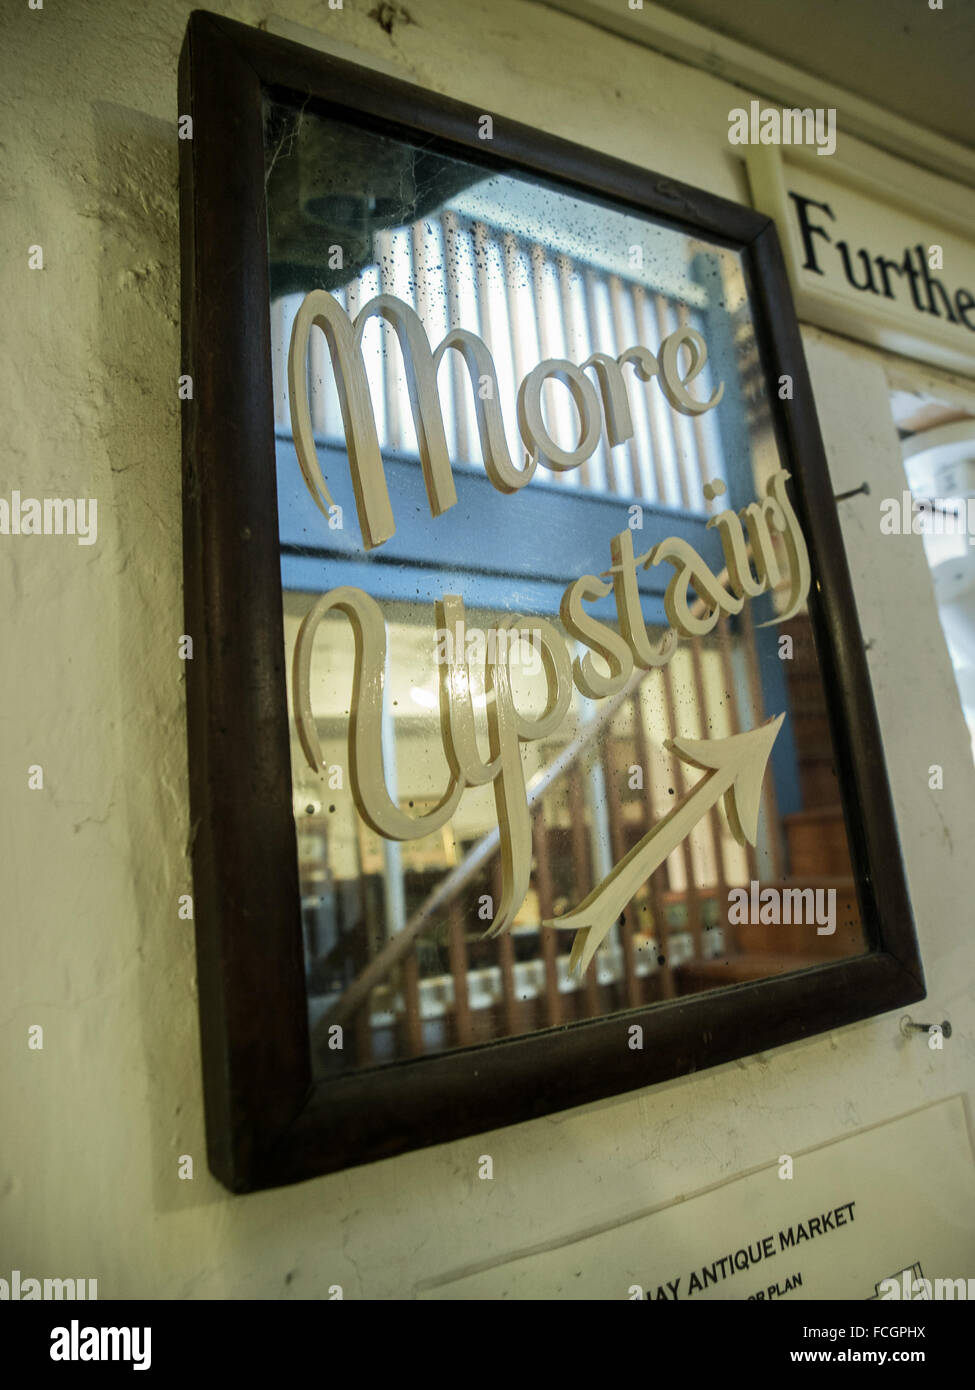 Brown wooden framed mirror with painted on cursive letters saying More Upstairs with arrow at an antique thrift - Stock Image